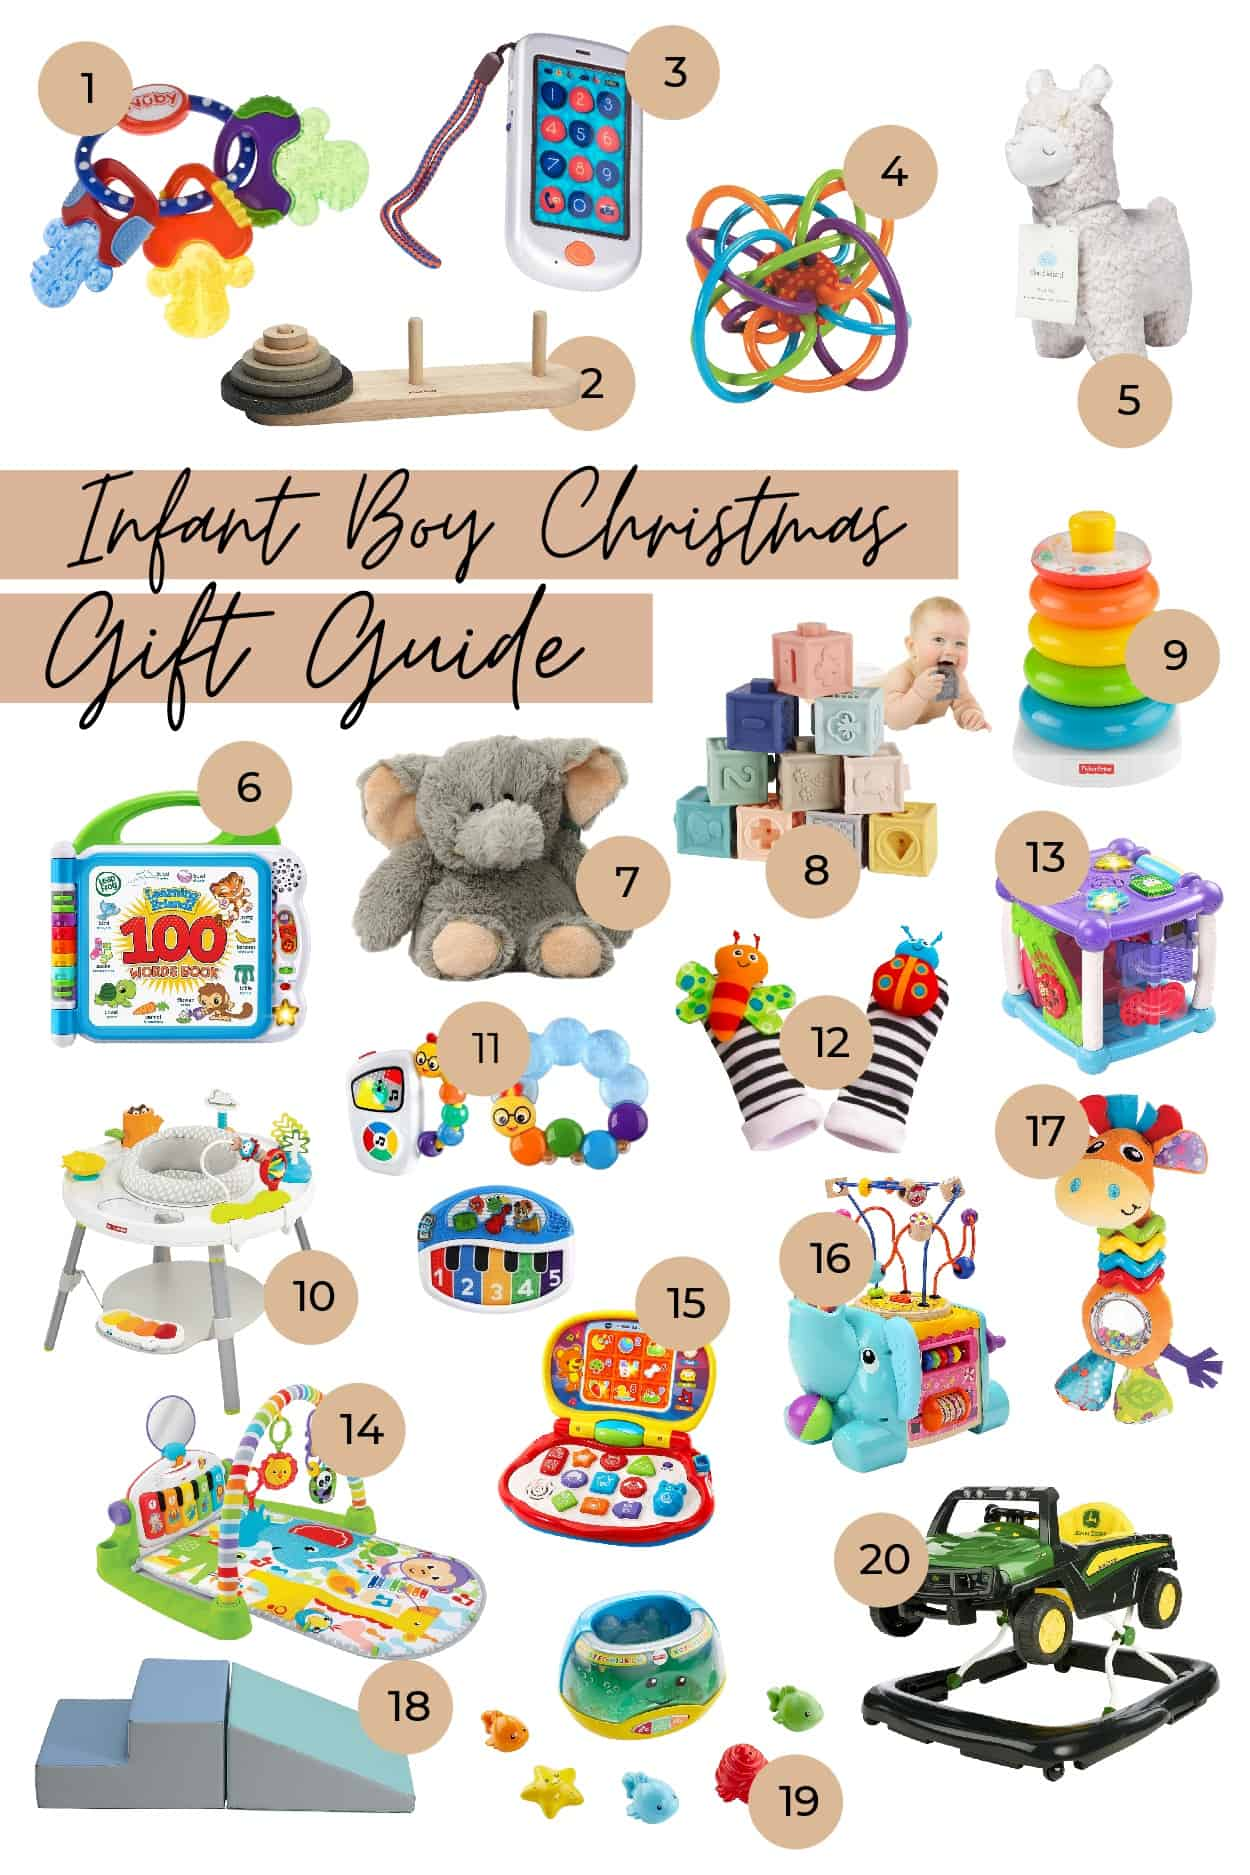 Gifts for Boys by popular Dallas life and style blog, Glamorous Versatility: collage image of a Nuby Baby Teether Keys, Interactive Smart Phone, PlanToys Stacking Tower Rattle and Sensory Teether Toy, Plush Llama Stuffed Animal, LeapFrog 100 Words Book, Warmies Microwavable Elephant, Soft Baby Stacking Blocks, Fisher-Price Stacking Rings, Skip Hop 3-Stage Activity Center, Baby Einstein Creative Composer Set, Baby Sock Toy Rattles, VTech Learning Cube, Fisher-Price Play Piano Gym, VTech Baby Laptop Activity, Maze Cube Buddies, Giraffe Climbing and Crawling Mat, Fisher-Price Magical Lights Fishbowl Bright Starts, John Deere Walker